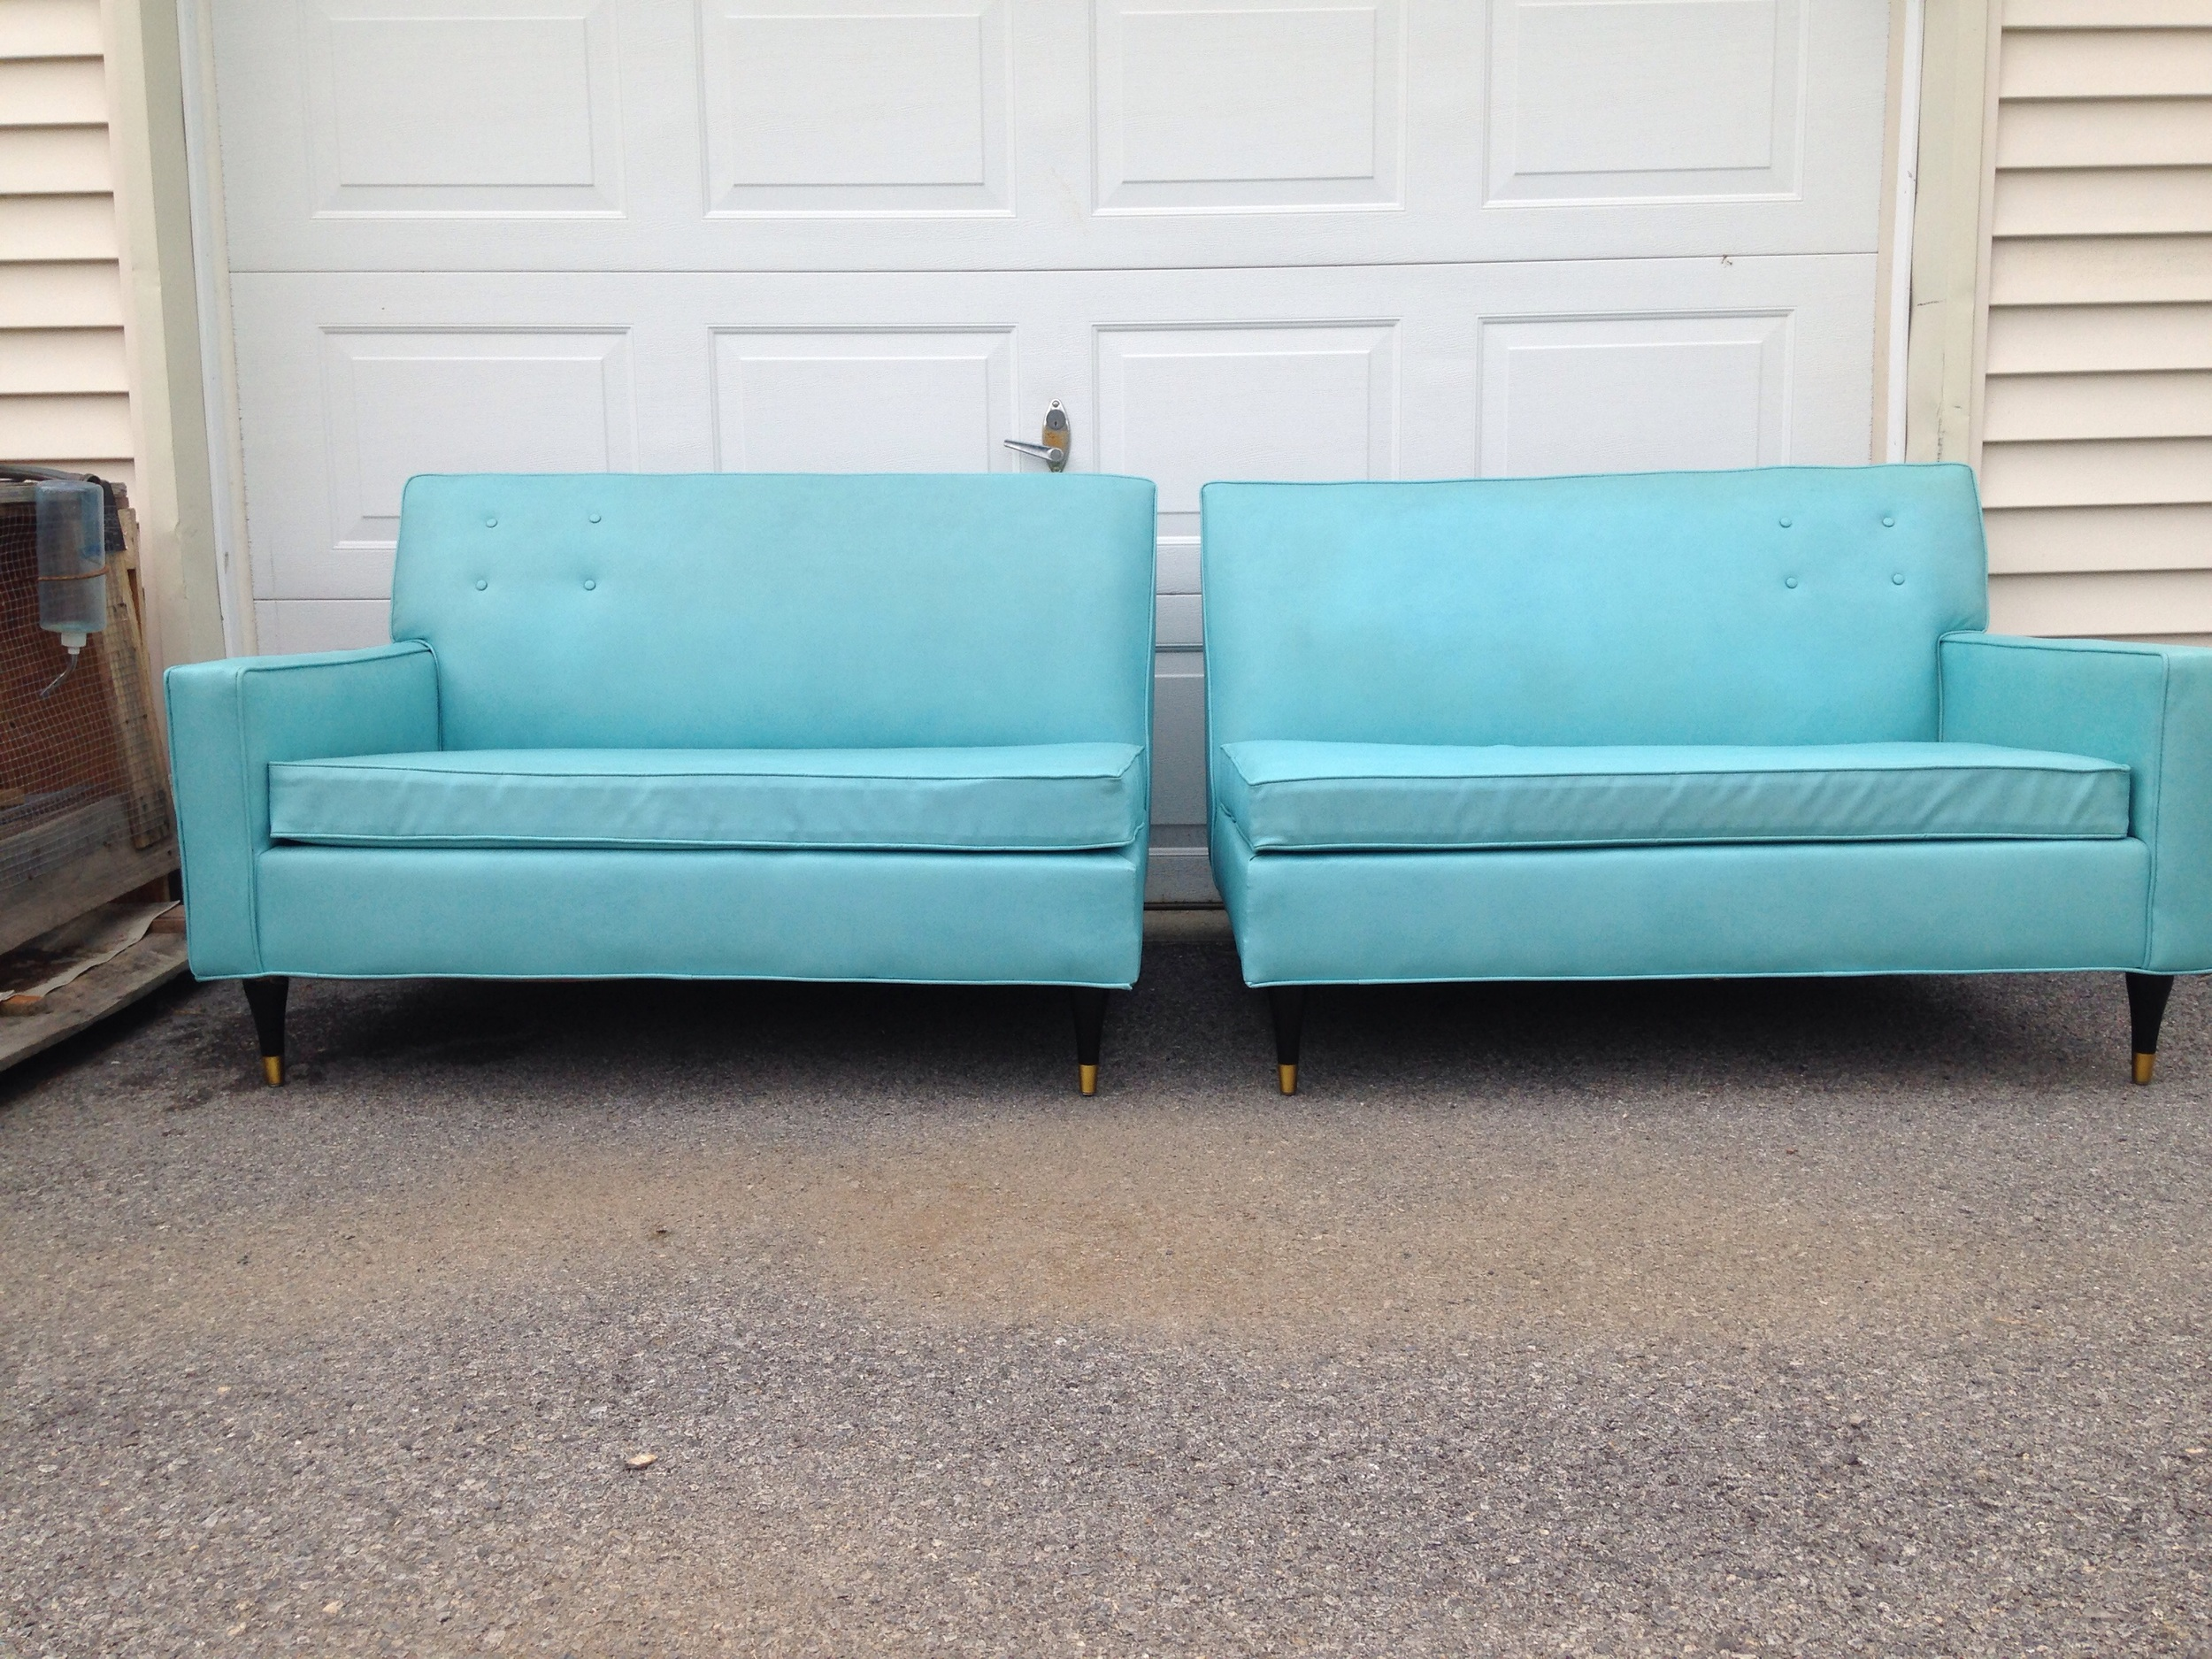 2 love seat sized settee's make up this versatile seating set that can be arranged to create a fabulous nook area. Great Aqua color features black plastic legs with gold trim.  Very comfy!